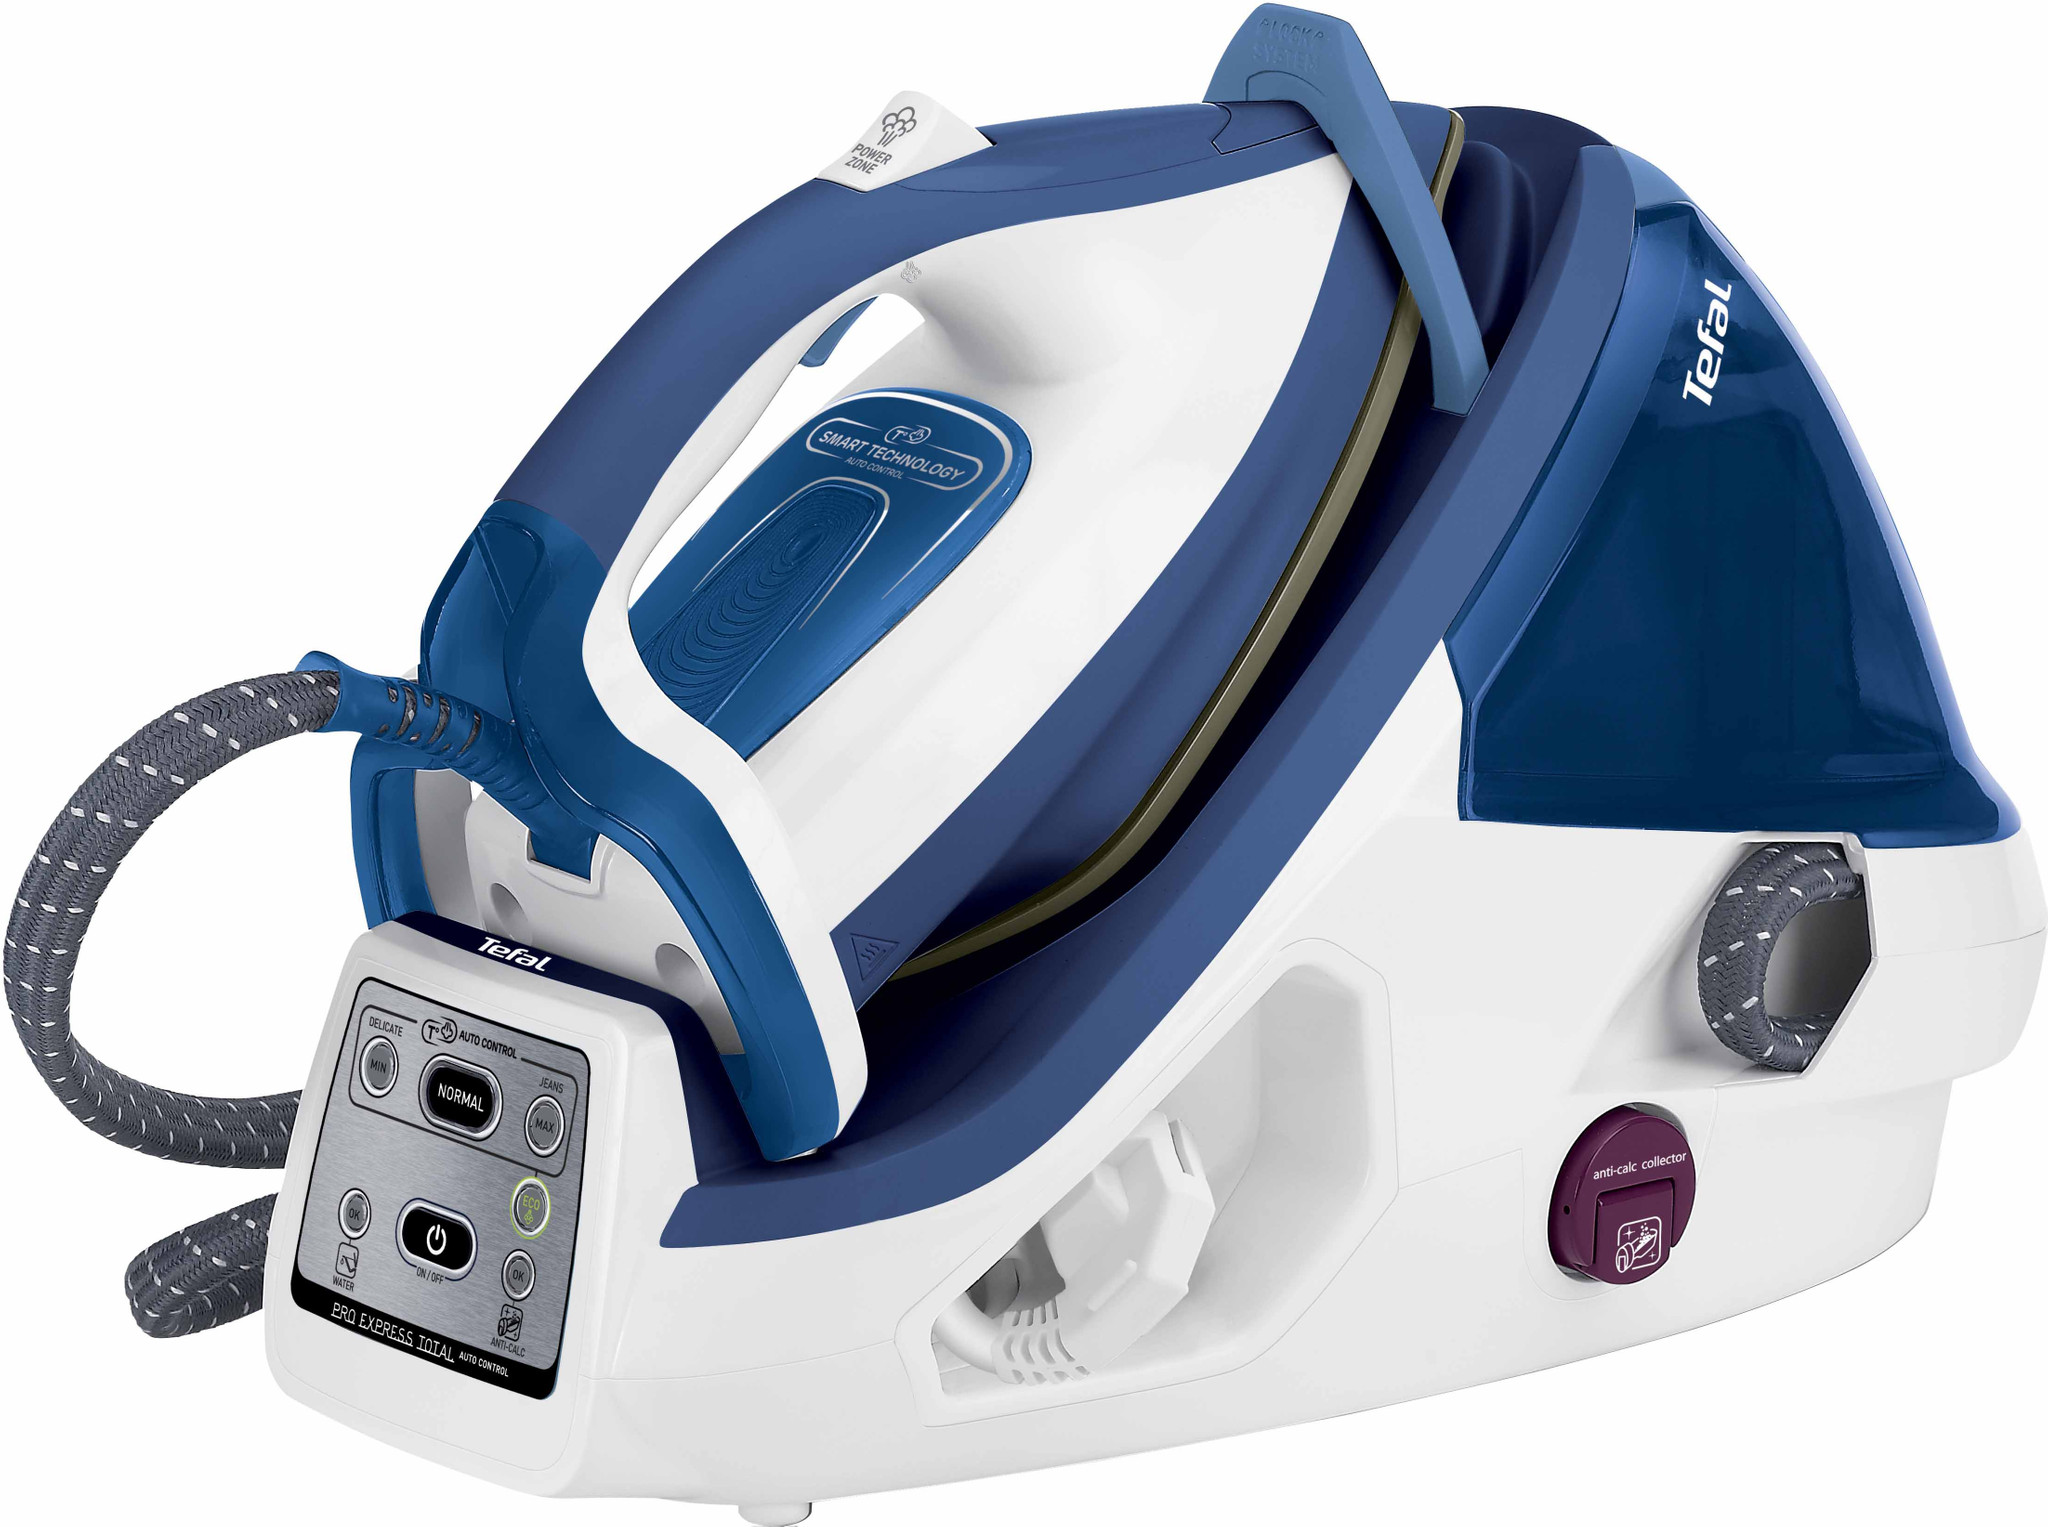 Tefal GV8931 Pro Express Total stoomgenerator